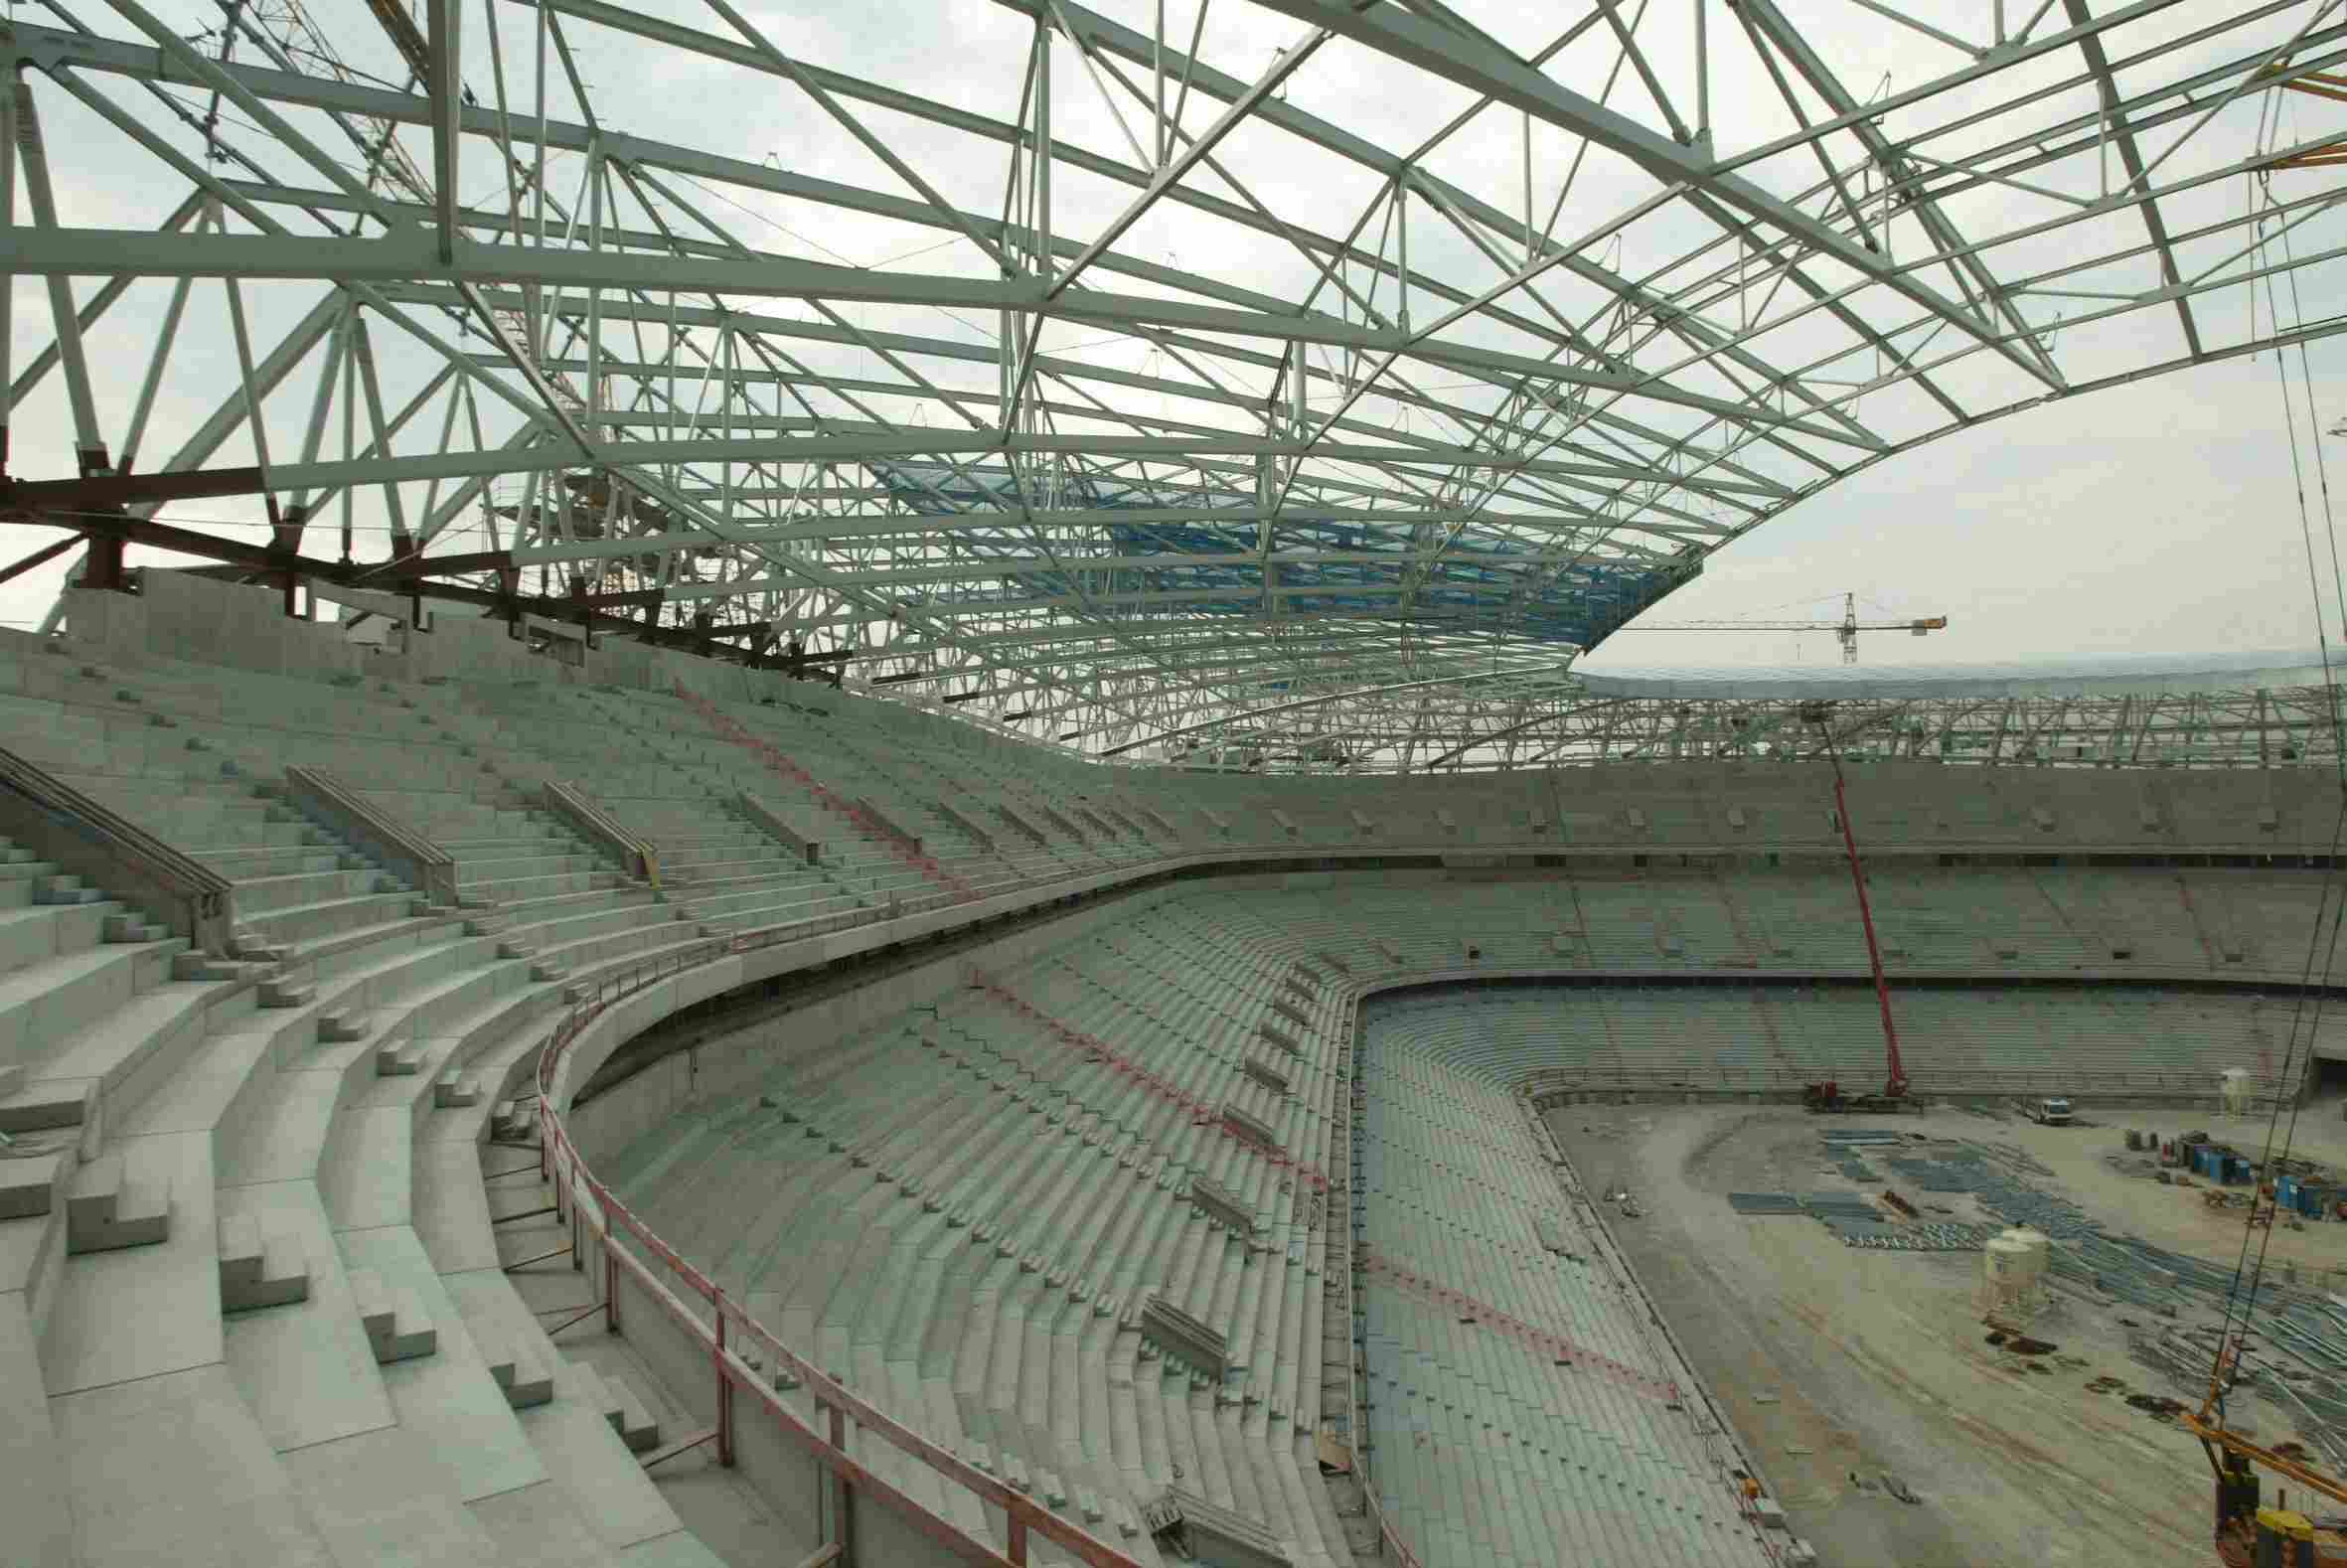 Inside Allianz Arena Under the Roof of ETFE